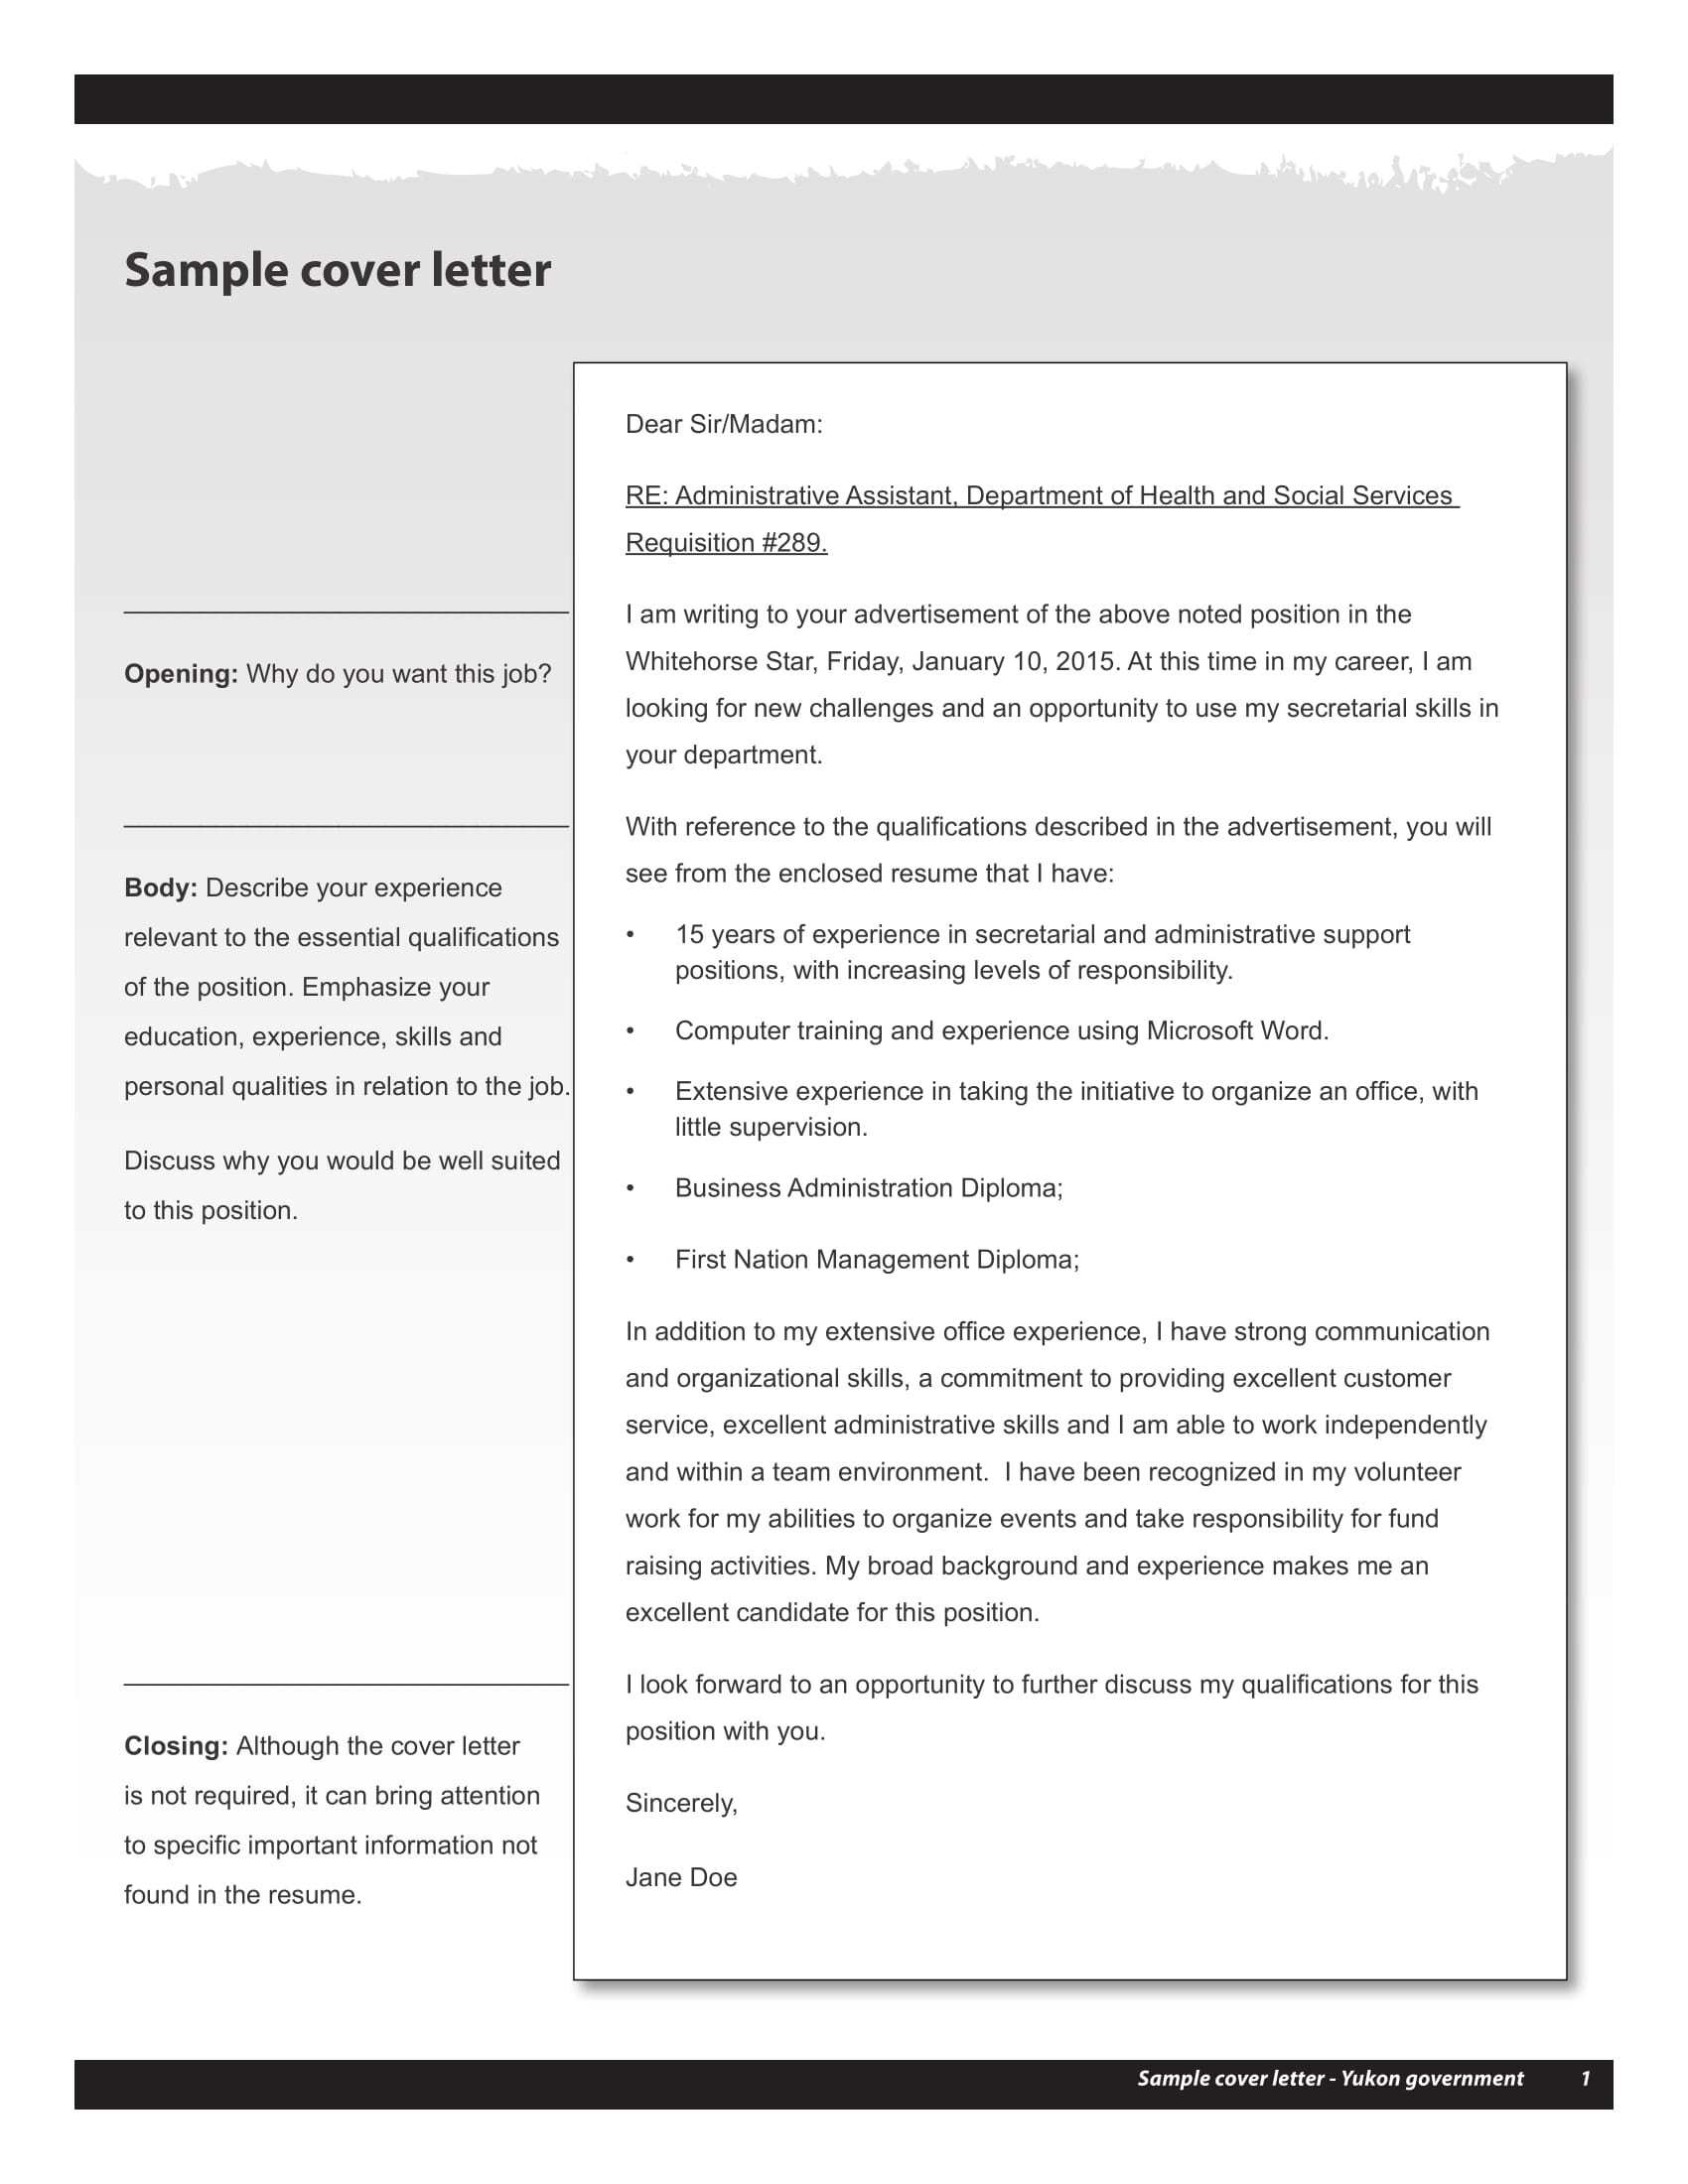 9 Professional Cover Letter Examples  PDF  Examples